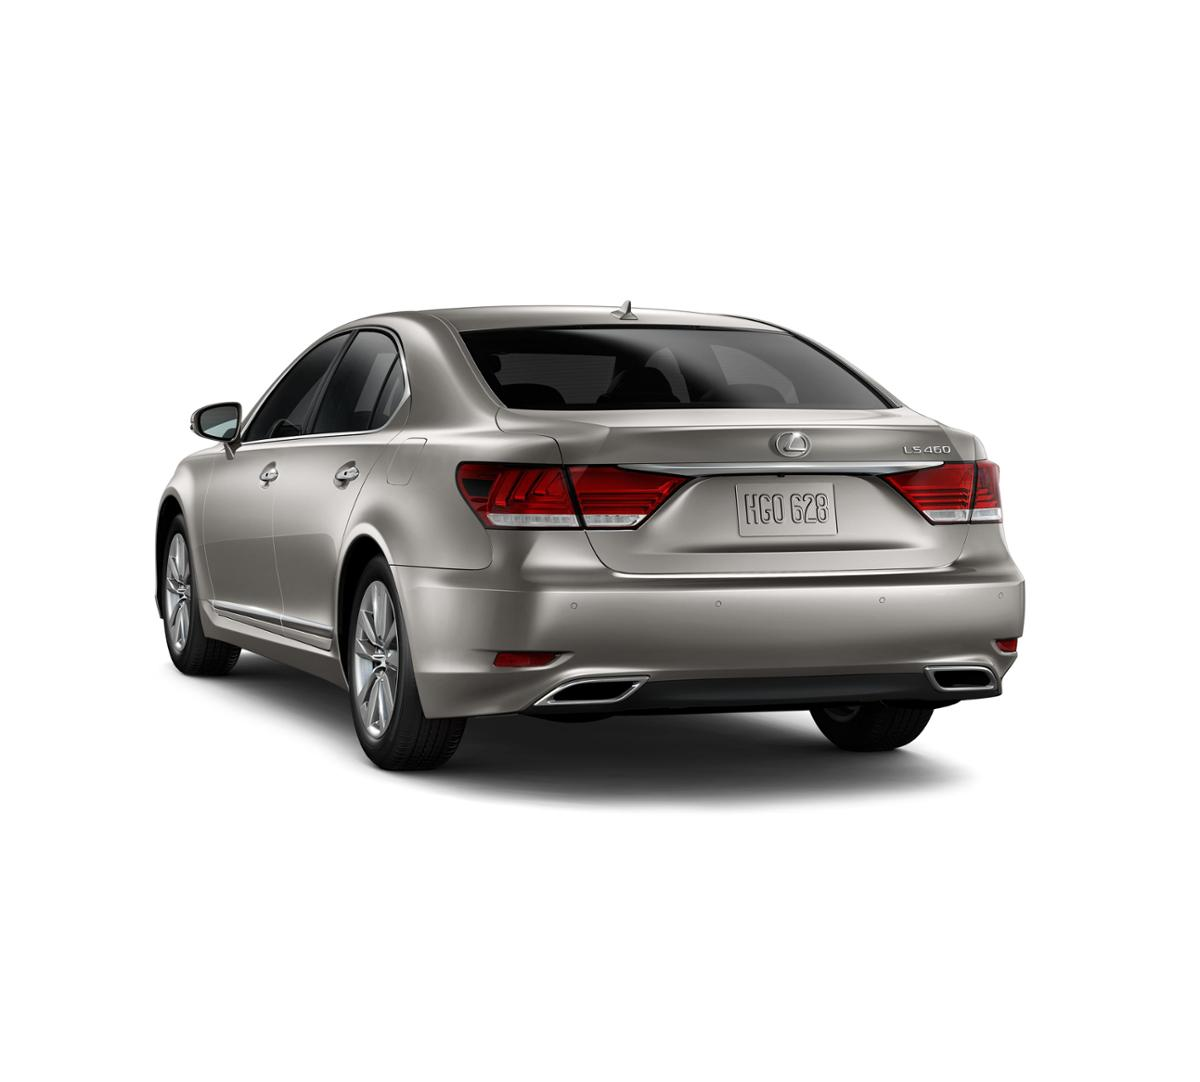 Newport News Atomic Silver 2017 Lexus LS 460: Certified